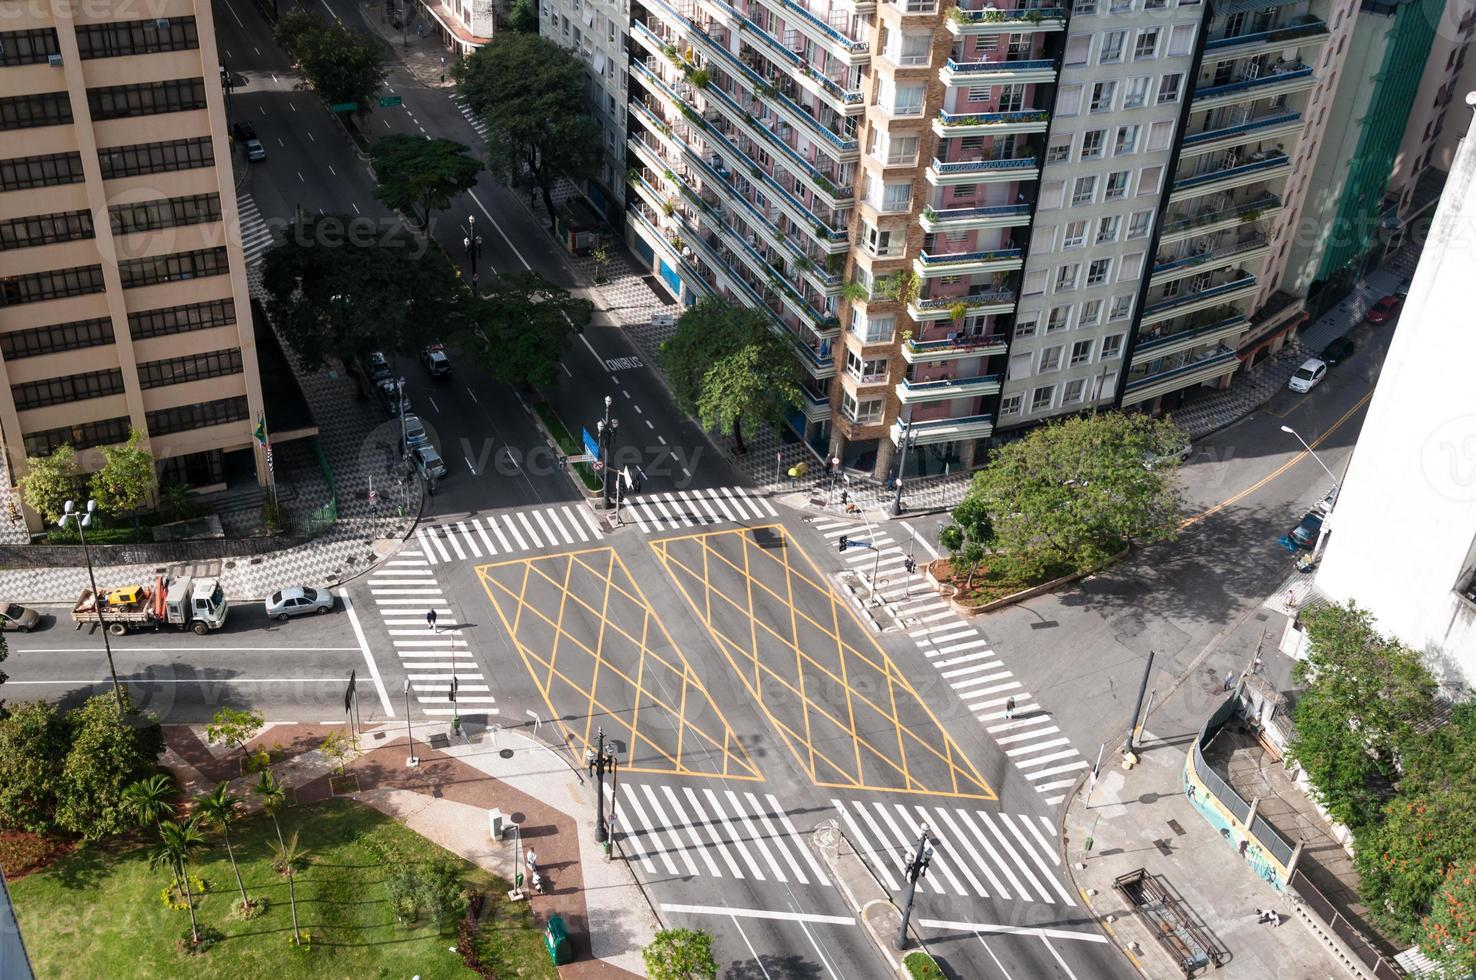 crossing streets in sao paulo photo